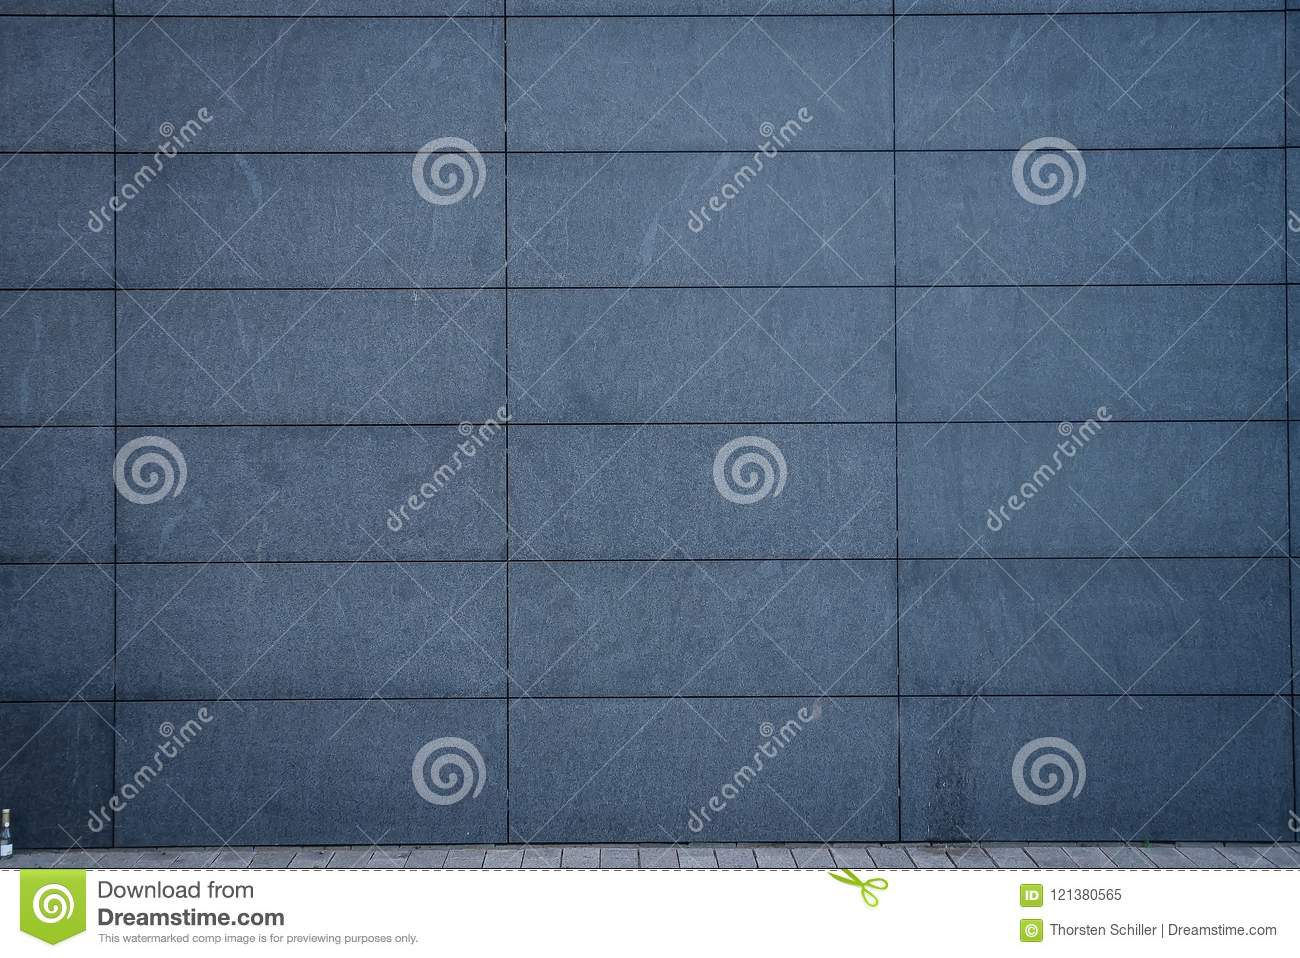 Grey large wall of tiles stock image. Image of ceramic - 121380565